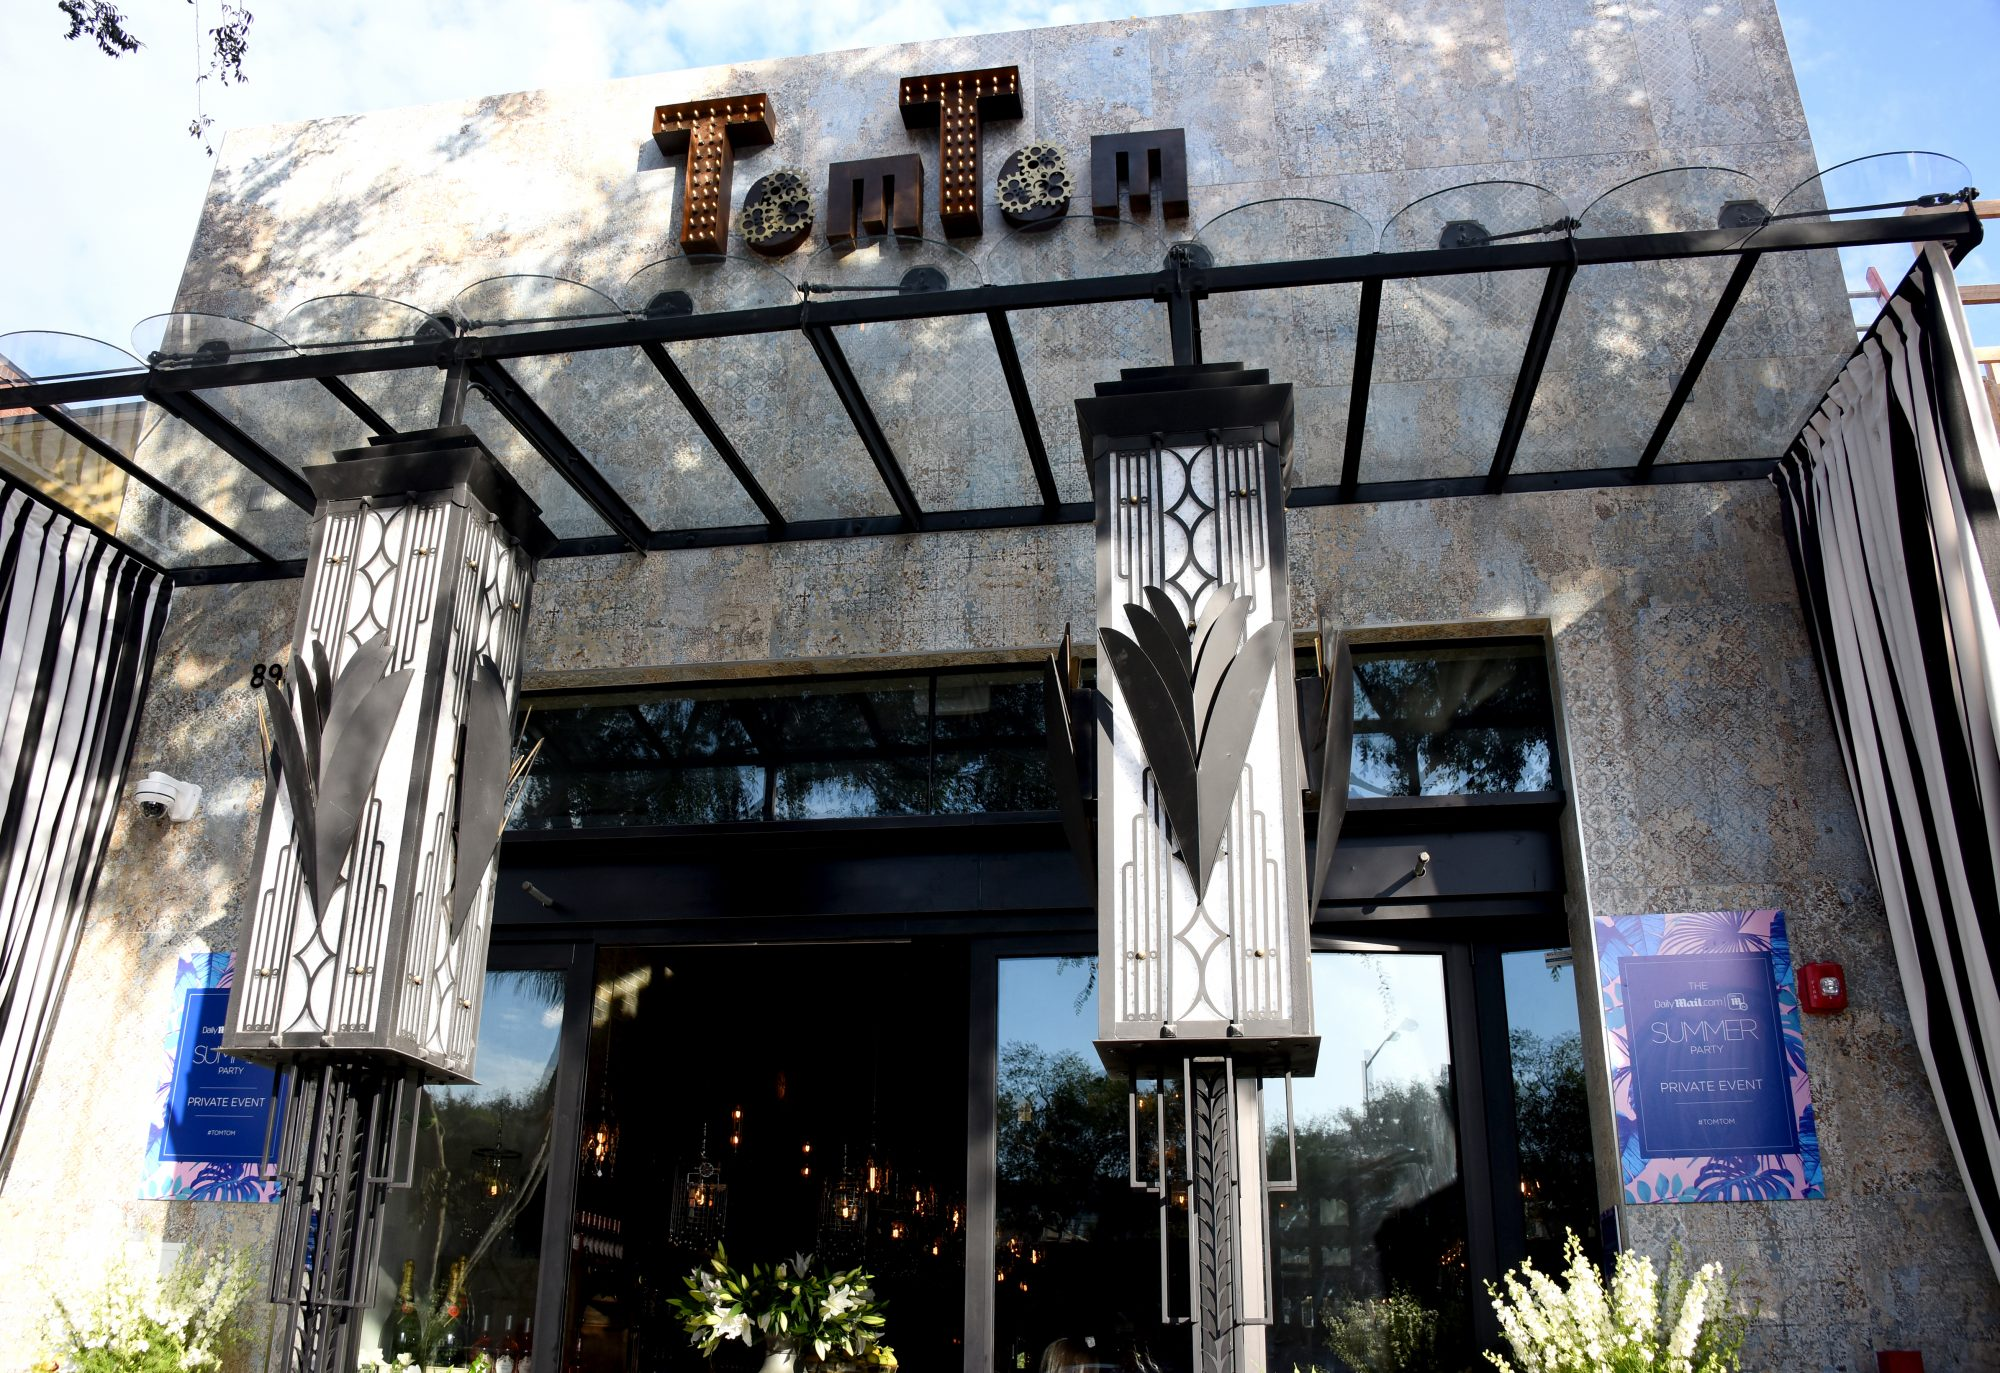 Lisa Vanderpump's New Bar Tom Tom: Everything We Know